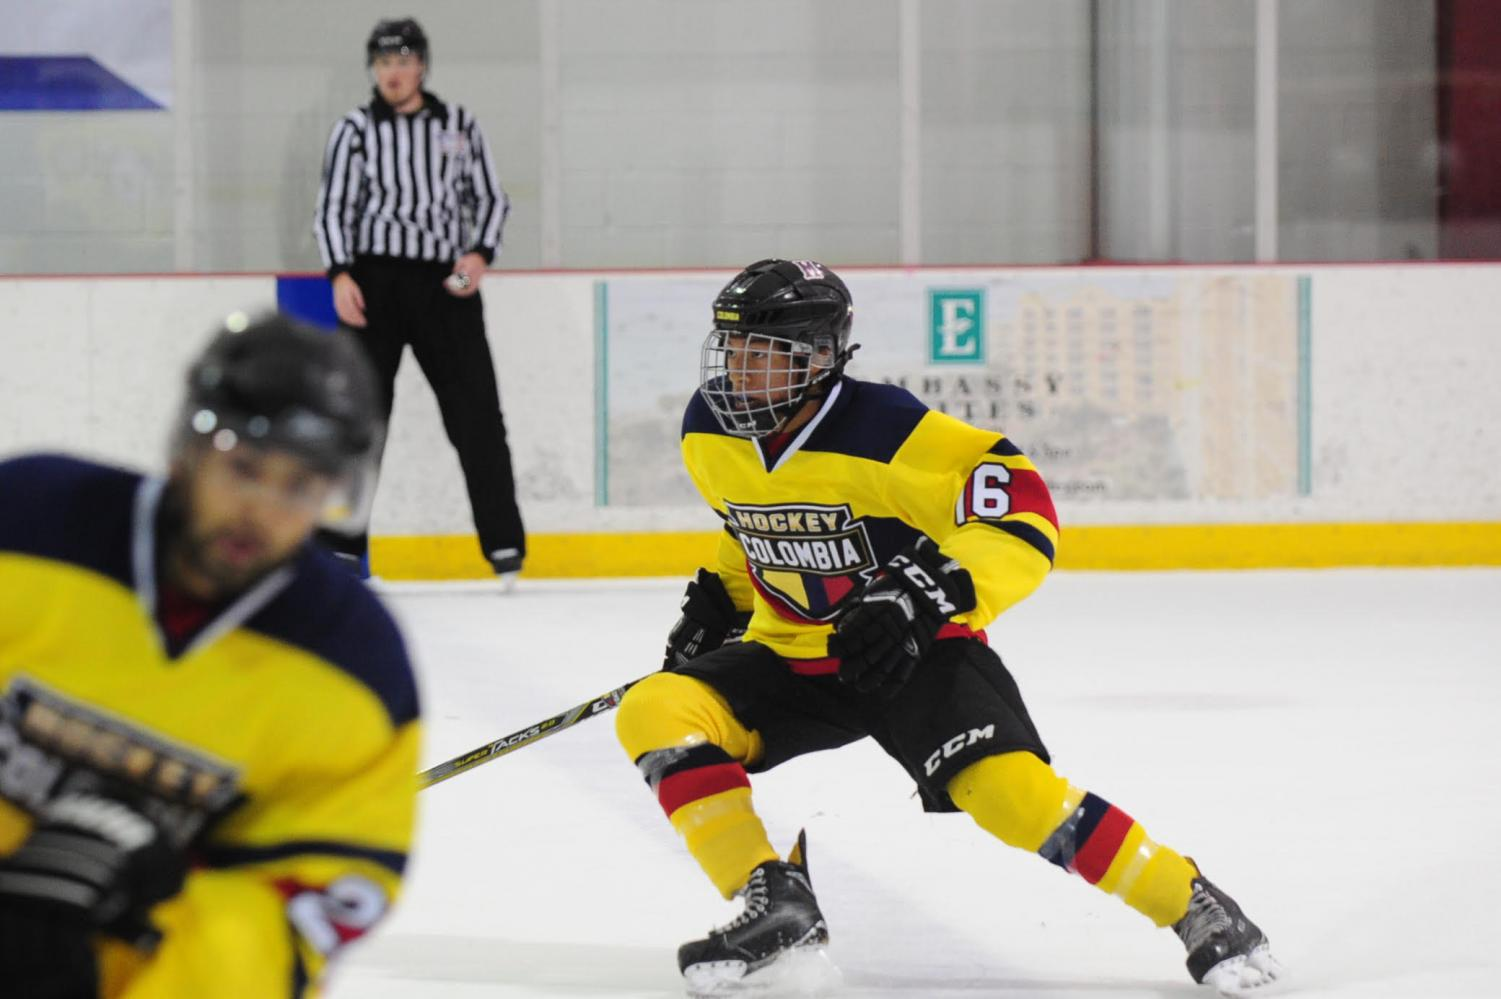 Sophomore Leo Warner plays for the Columbian hockey team in a international competition.